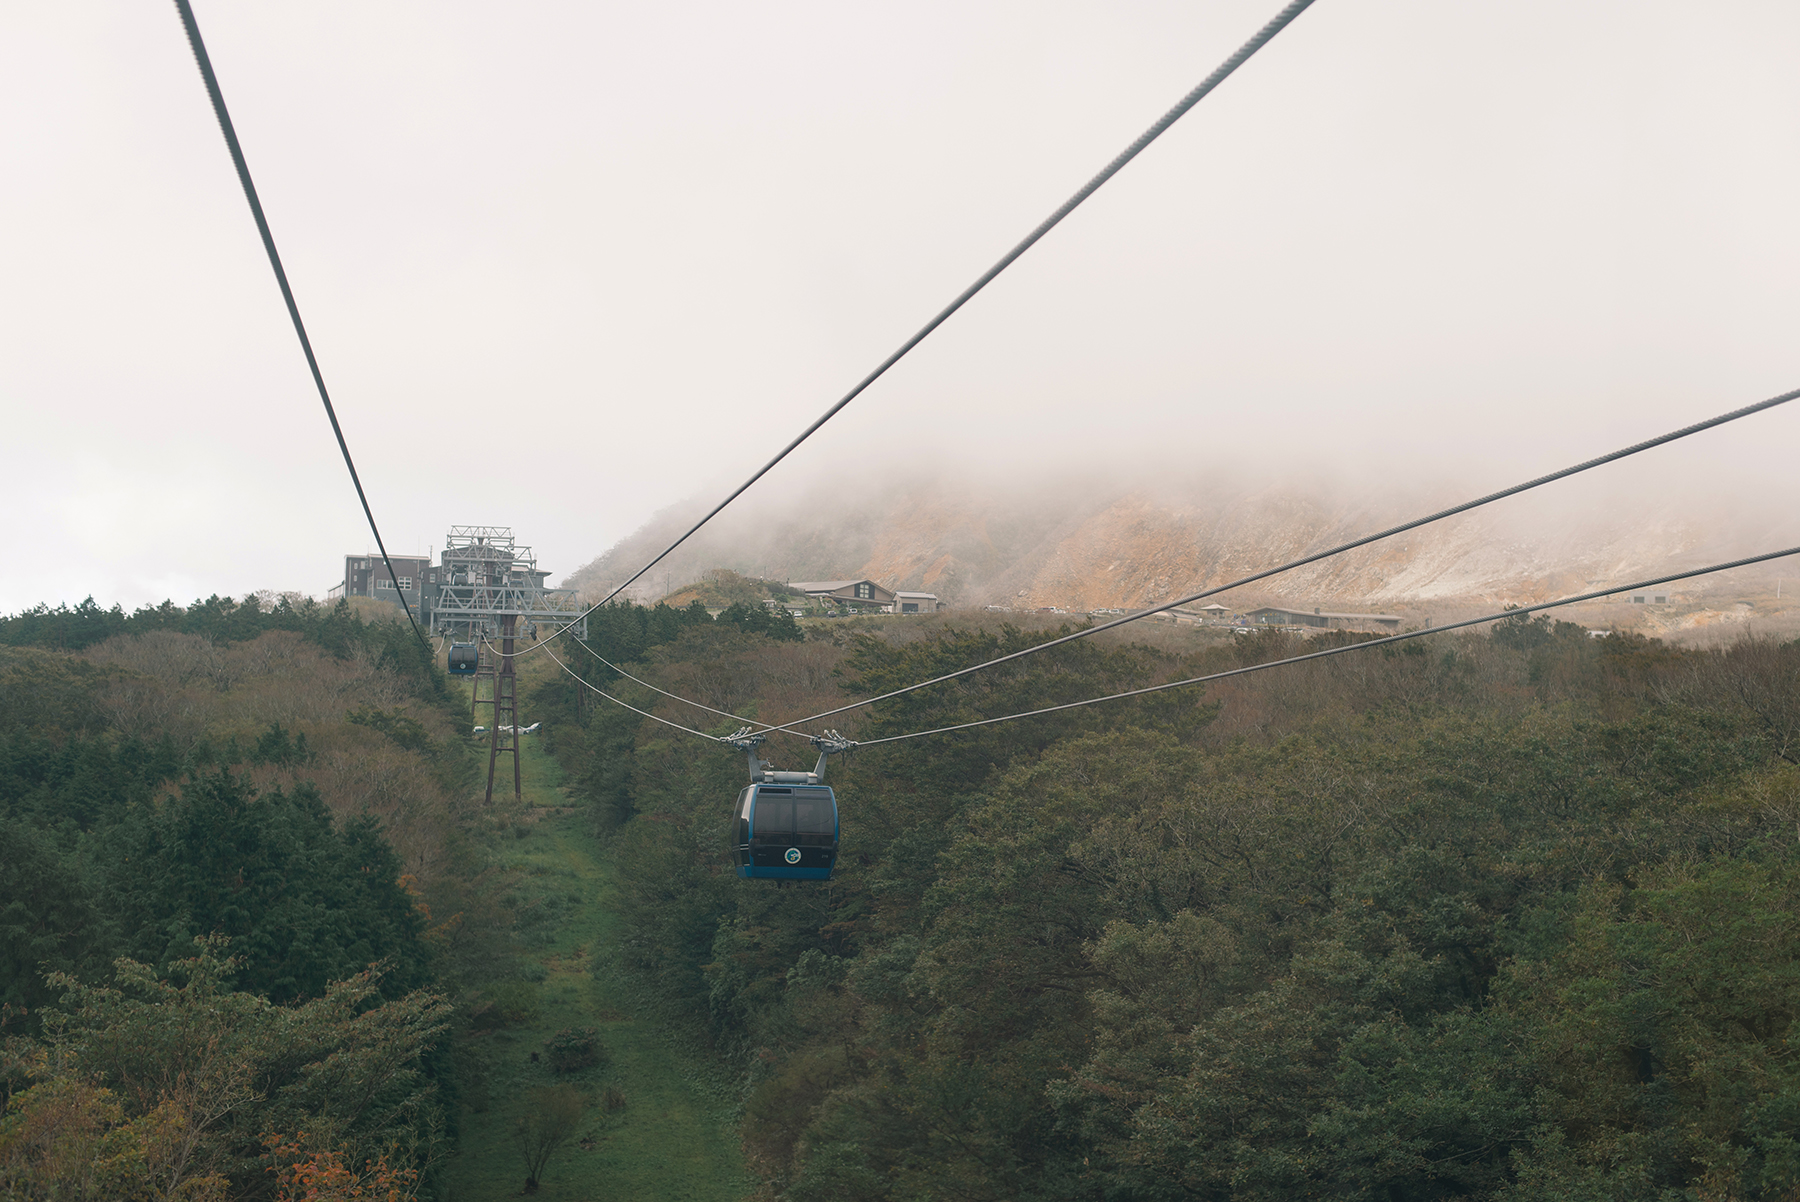 Took the ropeway down.